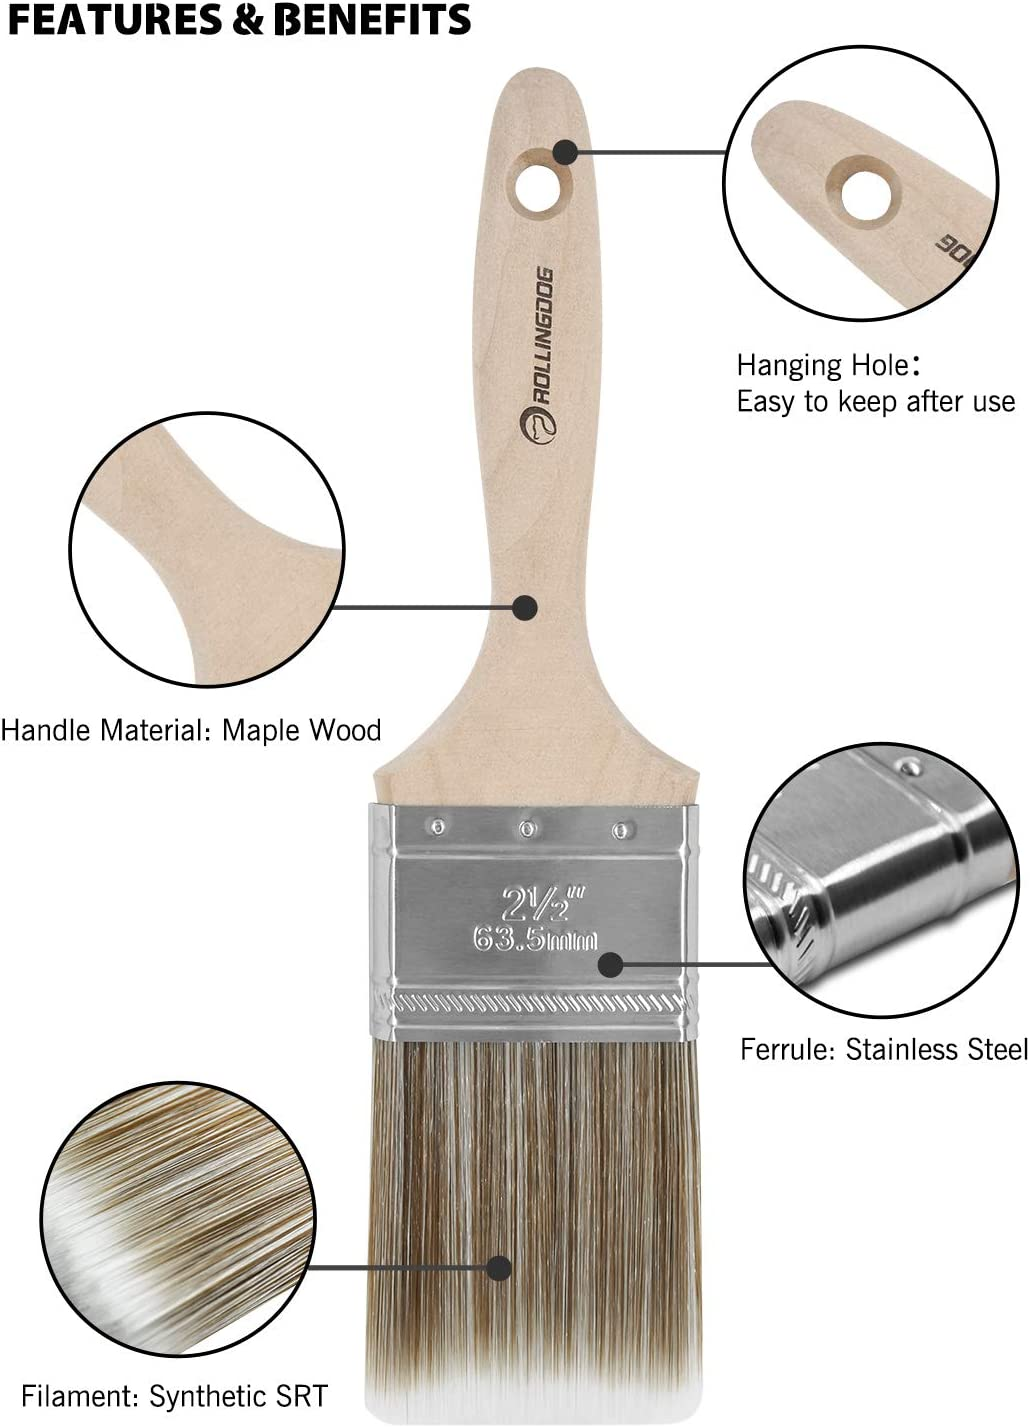 ROLLINGDOG 6PC 2.5 Paint Brush Set with Maple Wood Handle Stainless Steel Ferrule and Synthetic SRT Filament for Cutting in and Detail Painting